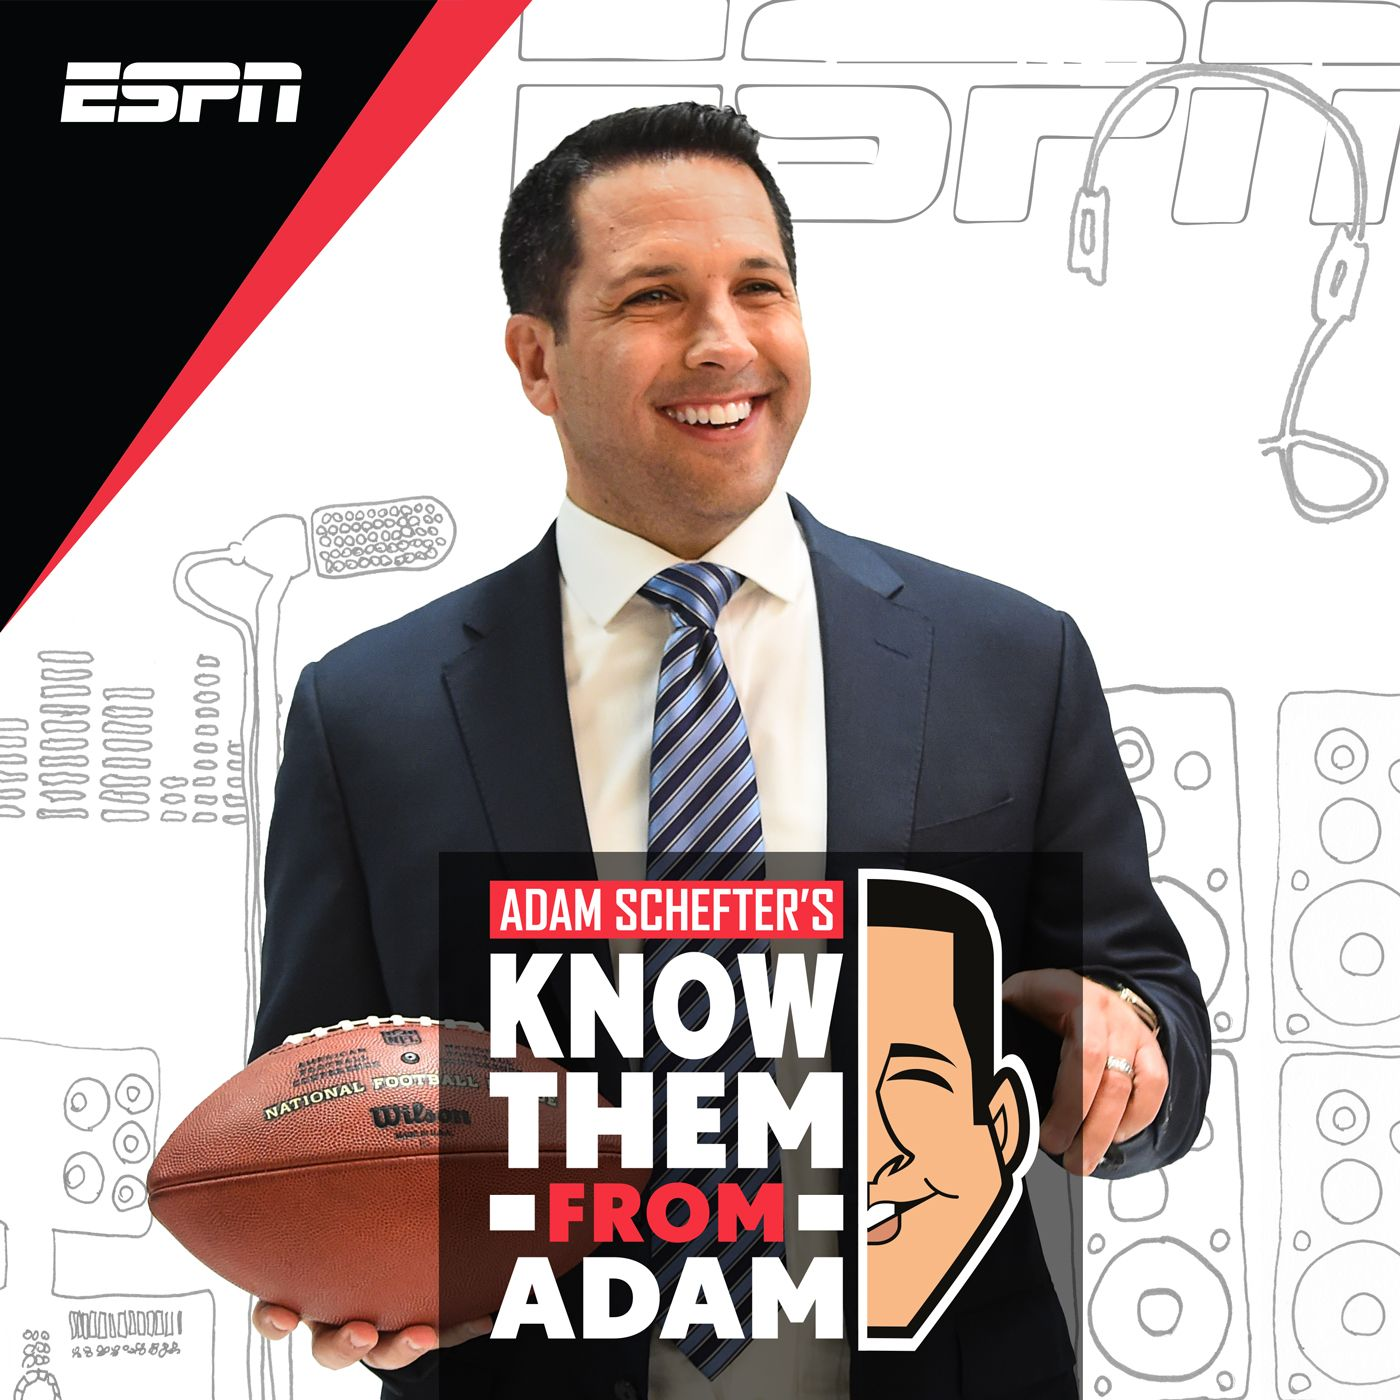 Adam Schefter's Know Them From Adam Logo